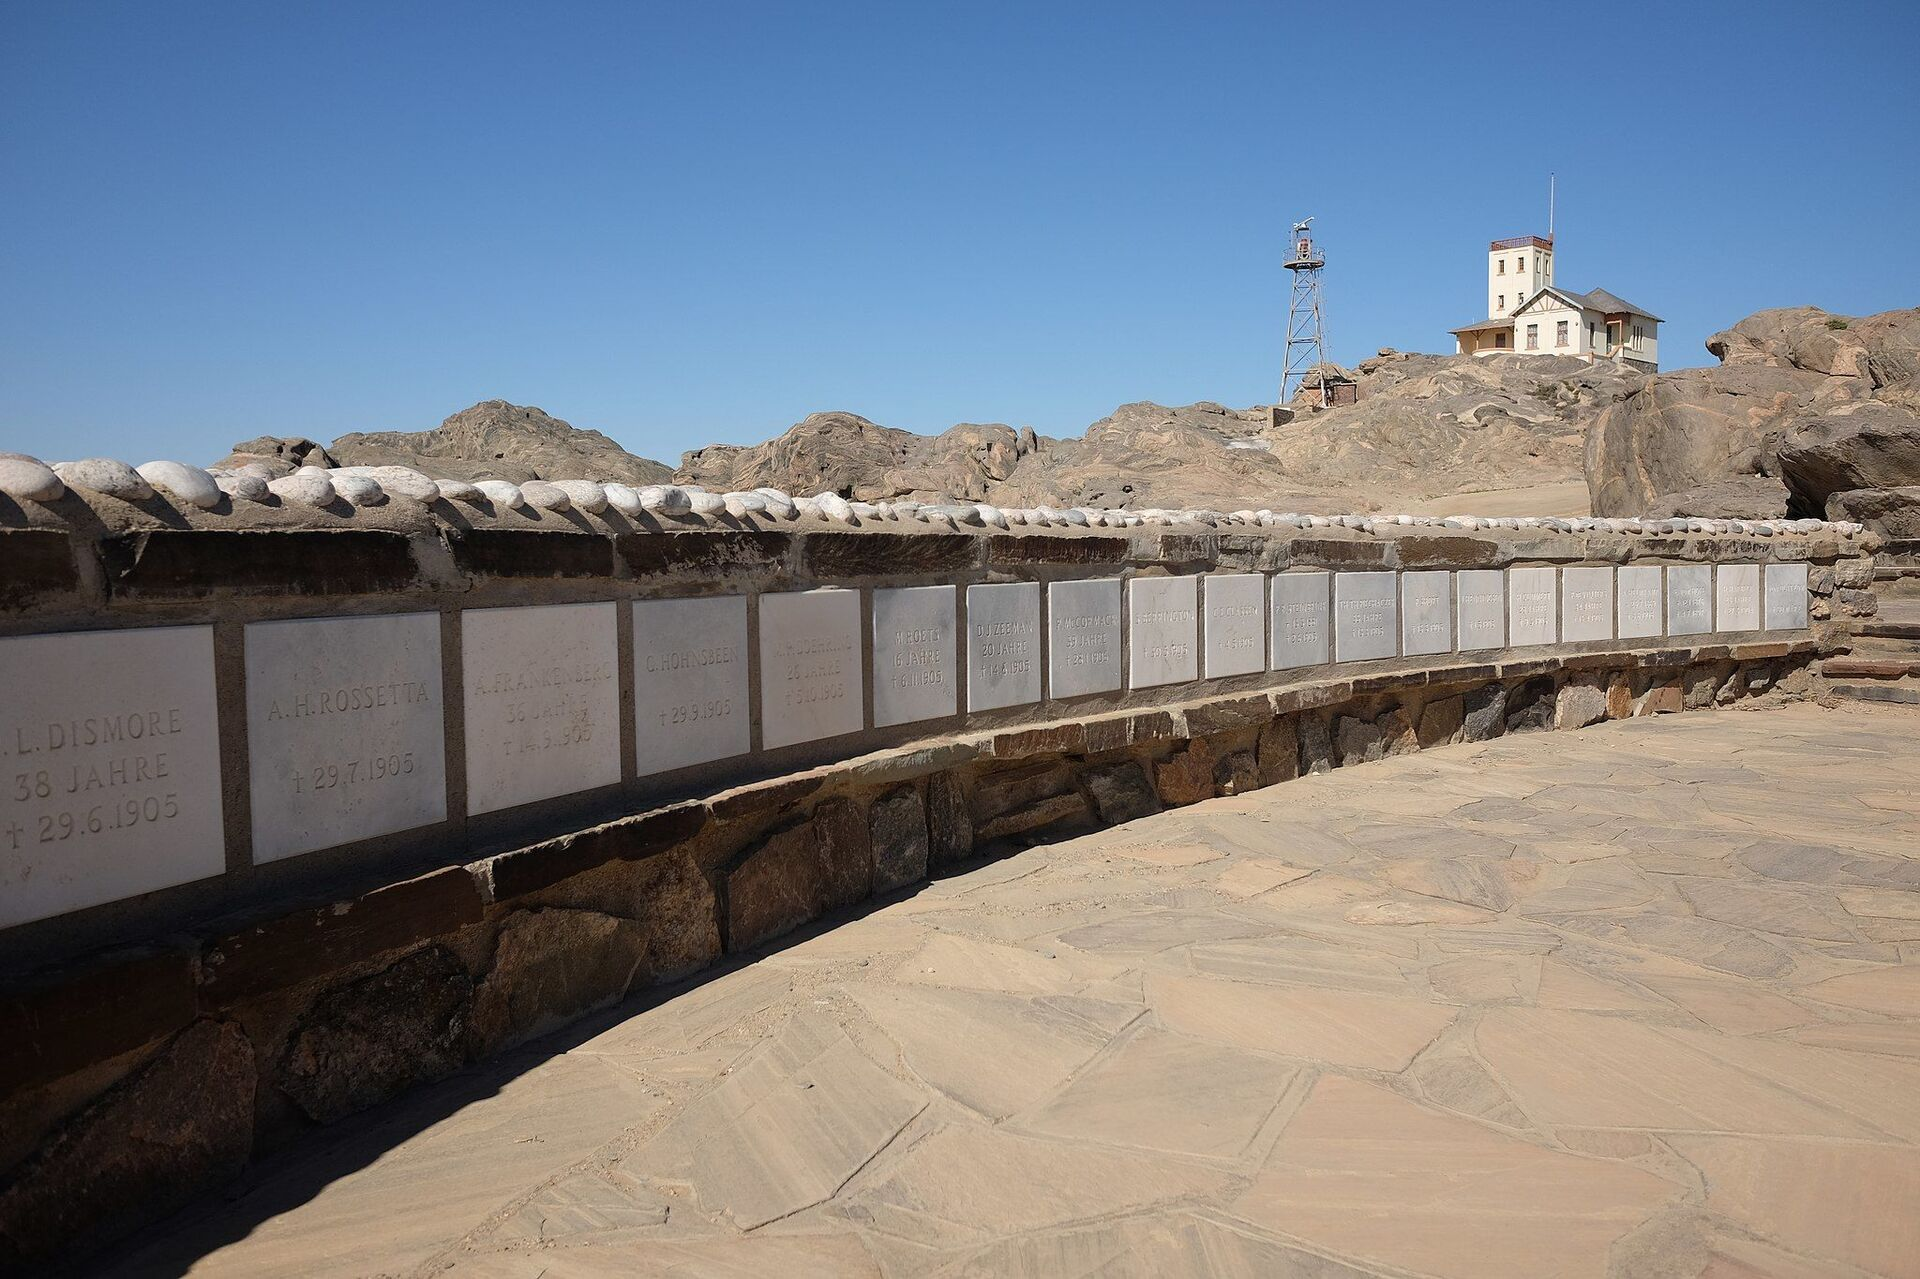 Shark Island, Lüderitz, Namibia. Formerly an island, it is now a peninsula. It was the home of the Shark Island Concentration Camp between 1905 and April 1907, as part of the Herero and Namaqua genocide of 1904–1908. - Sputnik International, 1920, 23.09.2021